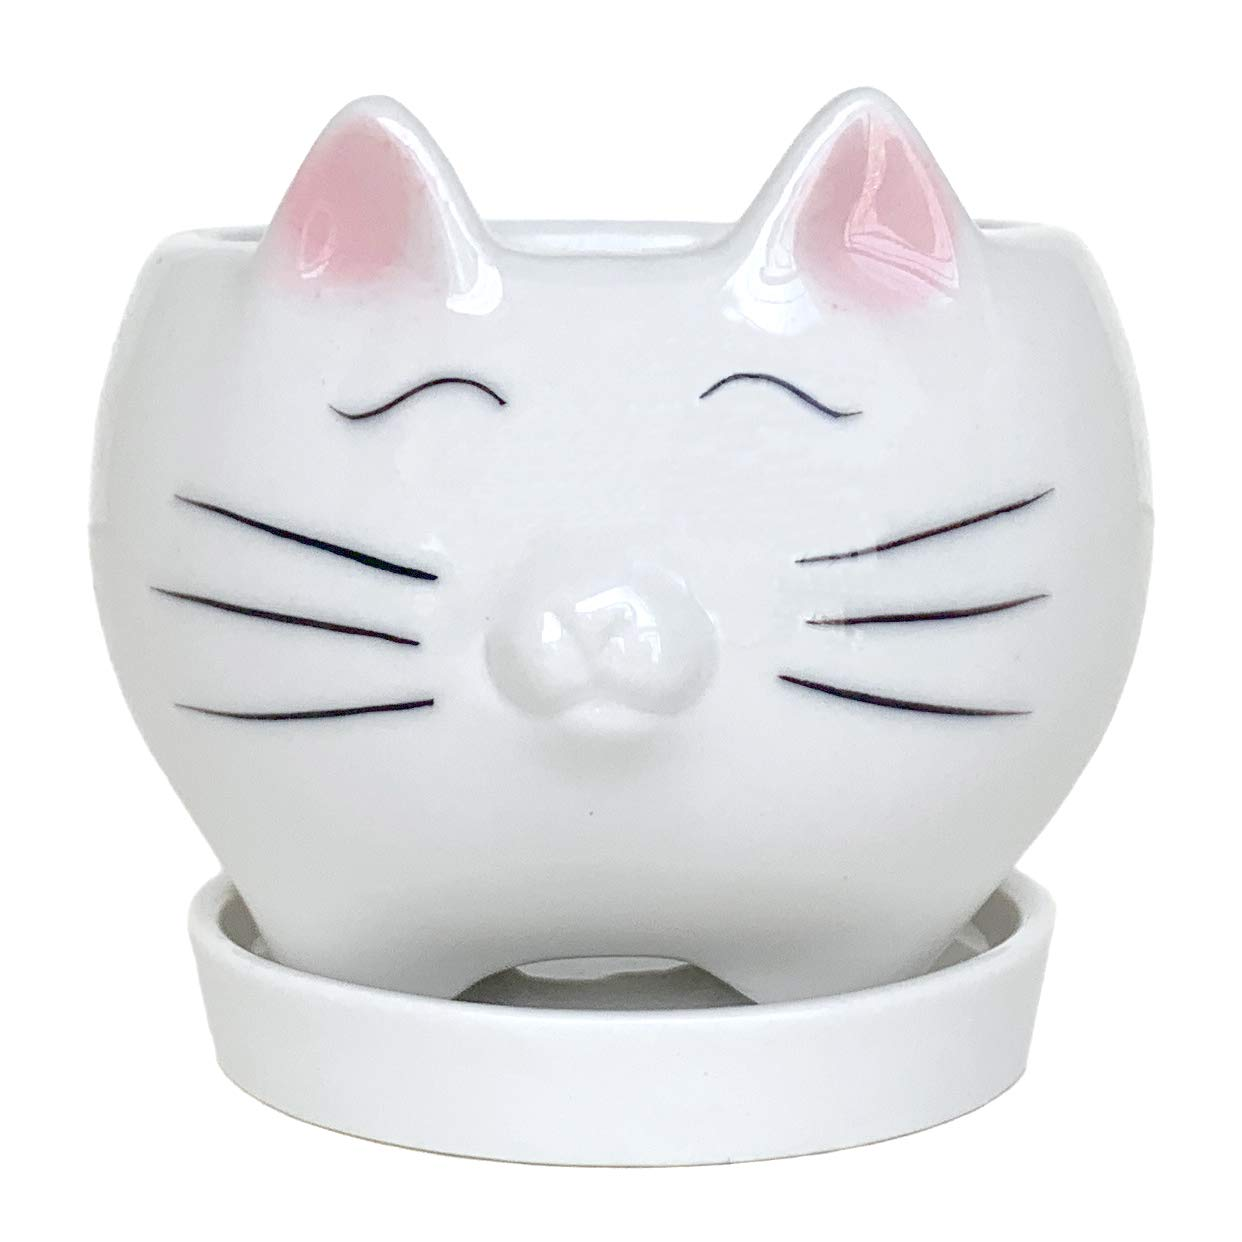 Qiuhome Mini Cute Cat Succulent Planter Pots Flower Pot Decorative White Ceramic Containers with Tray Saucer Cat